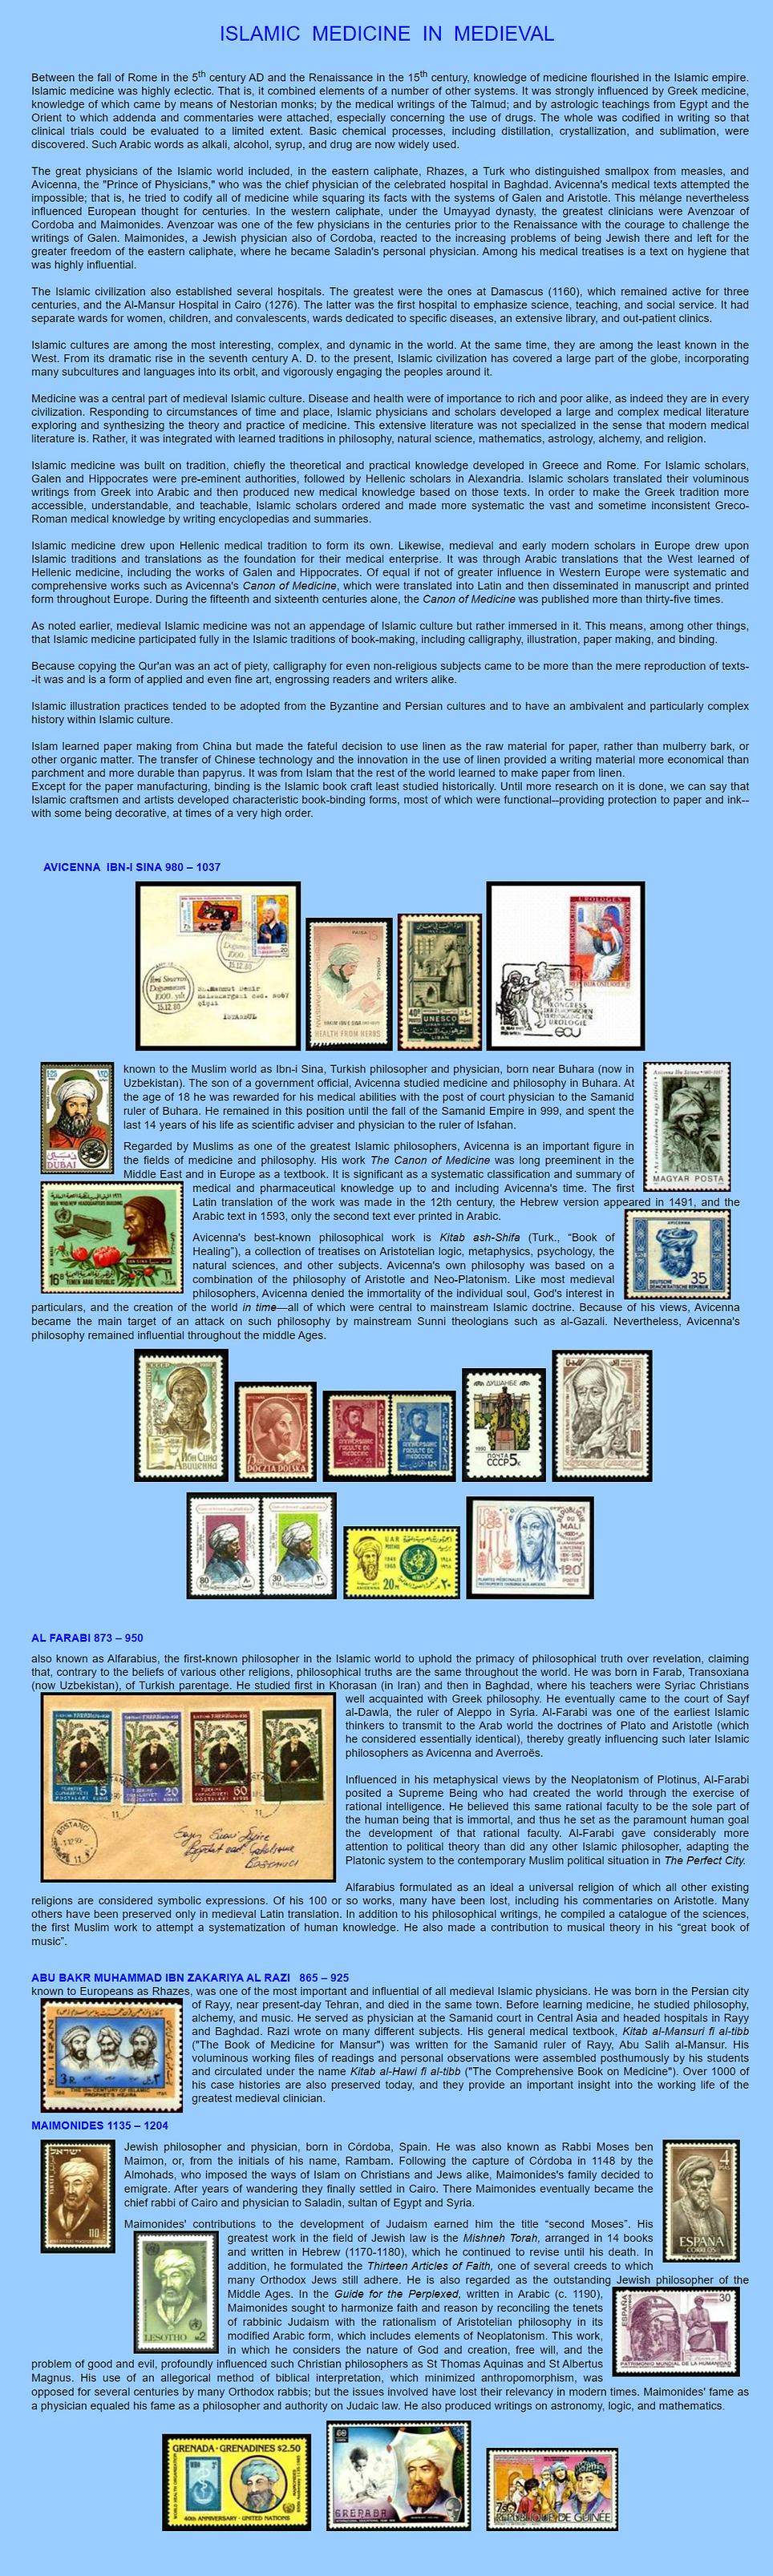 ISLAMIC  MEDICINE  IN  MEDIEVAL.png, Medicine-on-stamps, medicine, postage, postal, collecting, art, history, Medical Philately, Filatelia Médica, Filateli medis, Медицинская Филателия, Filatelia medica, 医療切手, 集邮医学, 의학적으로, Medisch filatelie, medizinische Philatelie, Dr Amir Monir ,Philatélie médicale, Orvosi Filatélia, 集郵醫學, Tıbbi Filateli, #filatelia ,#philately ,#stamp #stampcollection, #medicalphilately ,#medicine_on_stamps ,#art ,#thematics ,#philatelic #timbre, #philatélie ,#HistoryOfMedicine, #medicine #History, #postalstamps ,#artsinhealth ,Medikal na Philately, Falsafah Perubatan, Ιατρική Φιλοτελία, پزشکی فیلاته, طوابع طبية